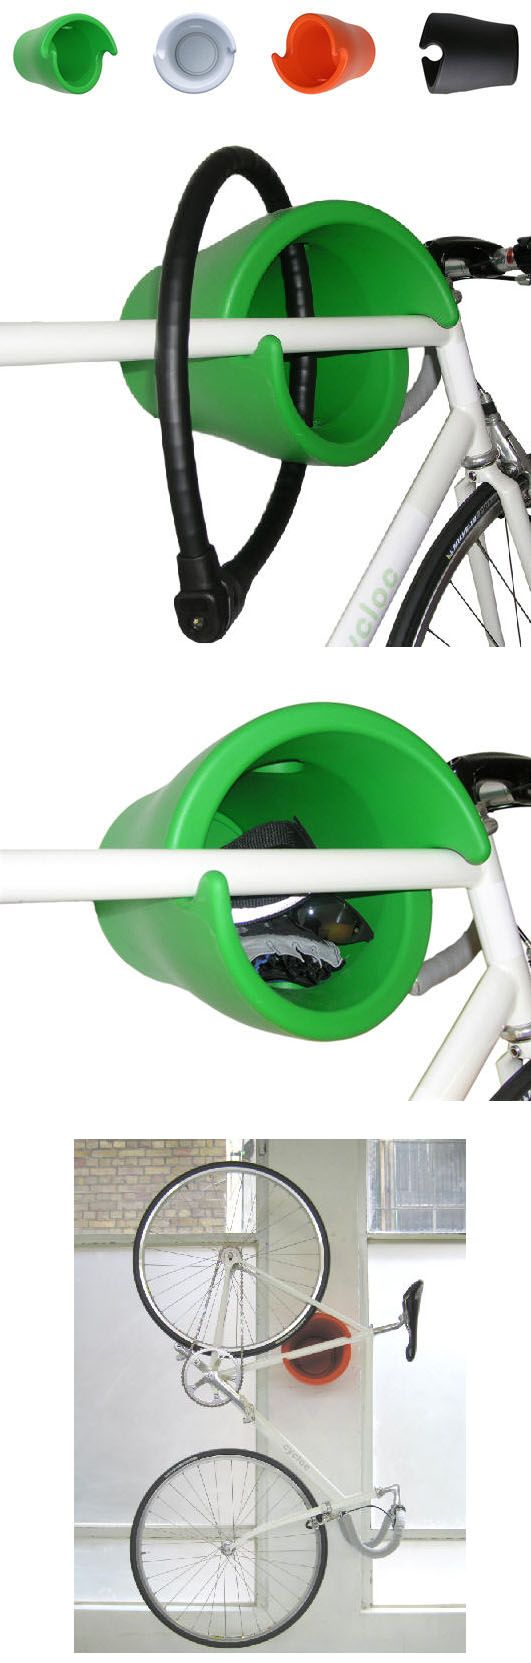 258 best Bicycle accessories images on Pinterest | Bicycle ...